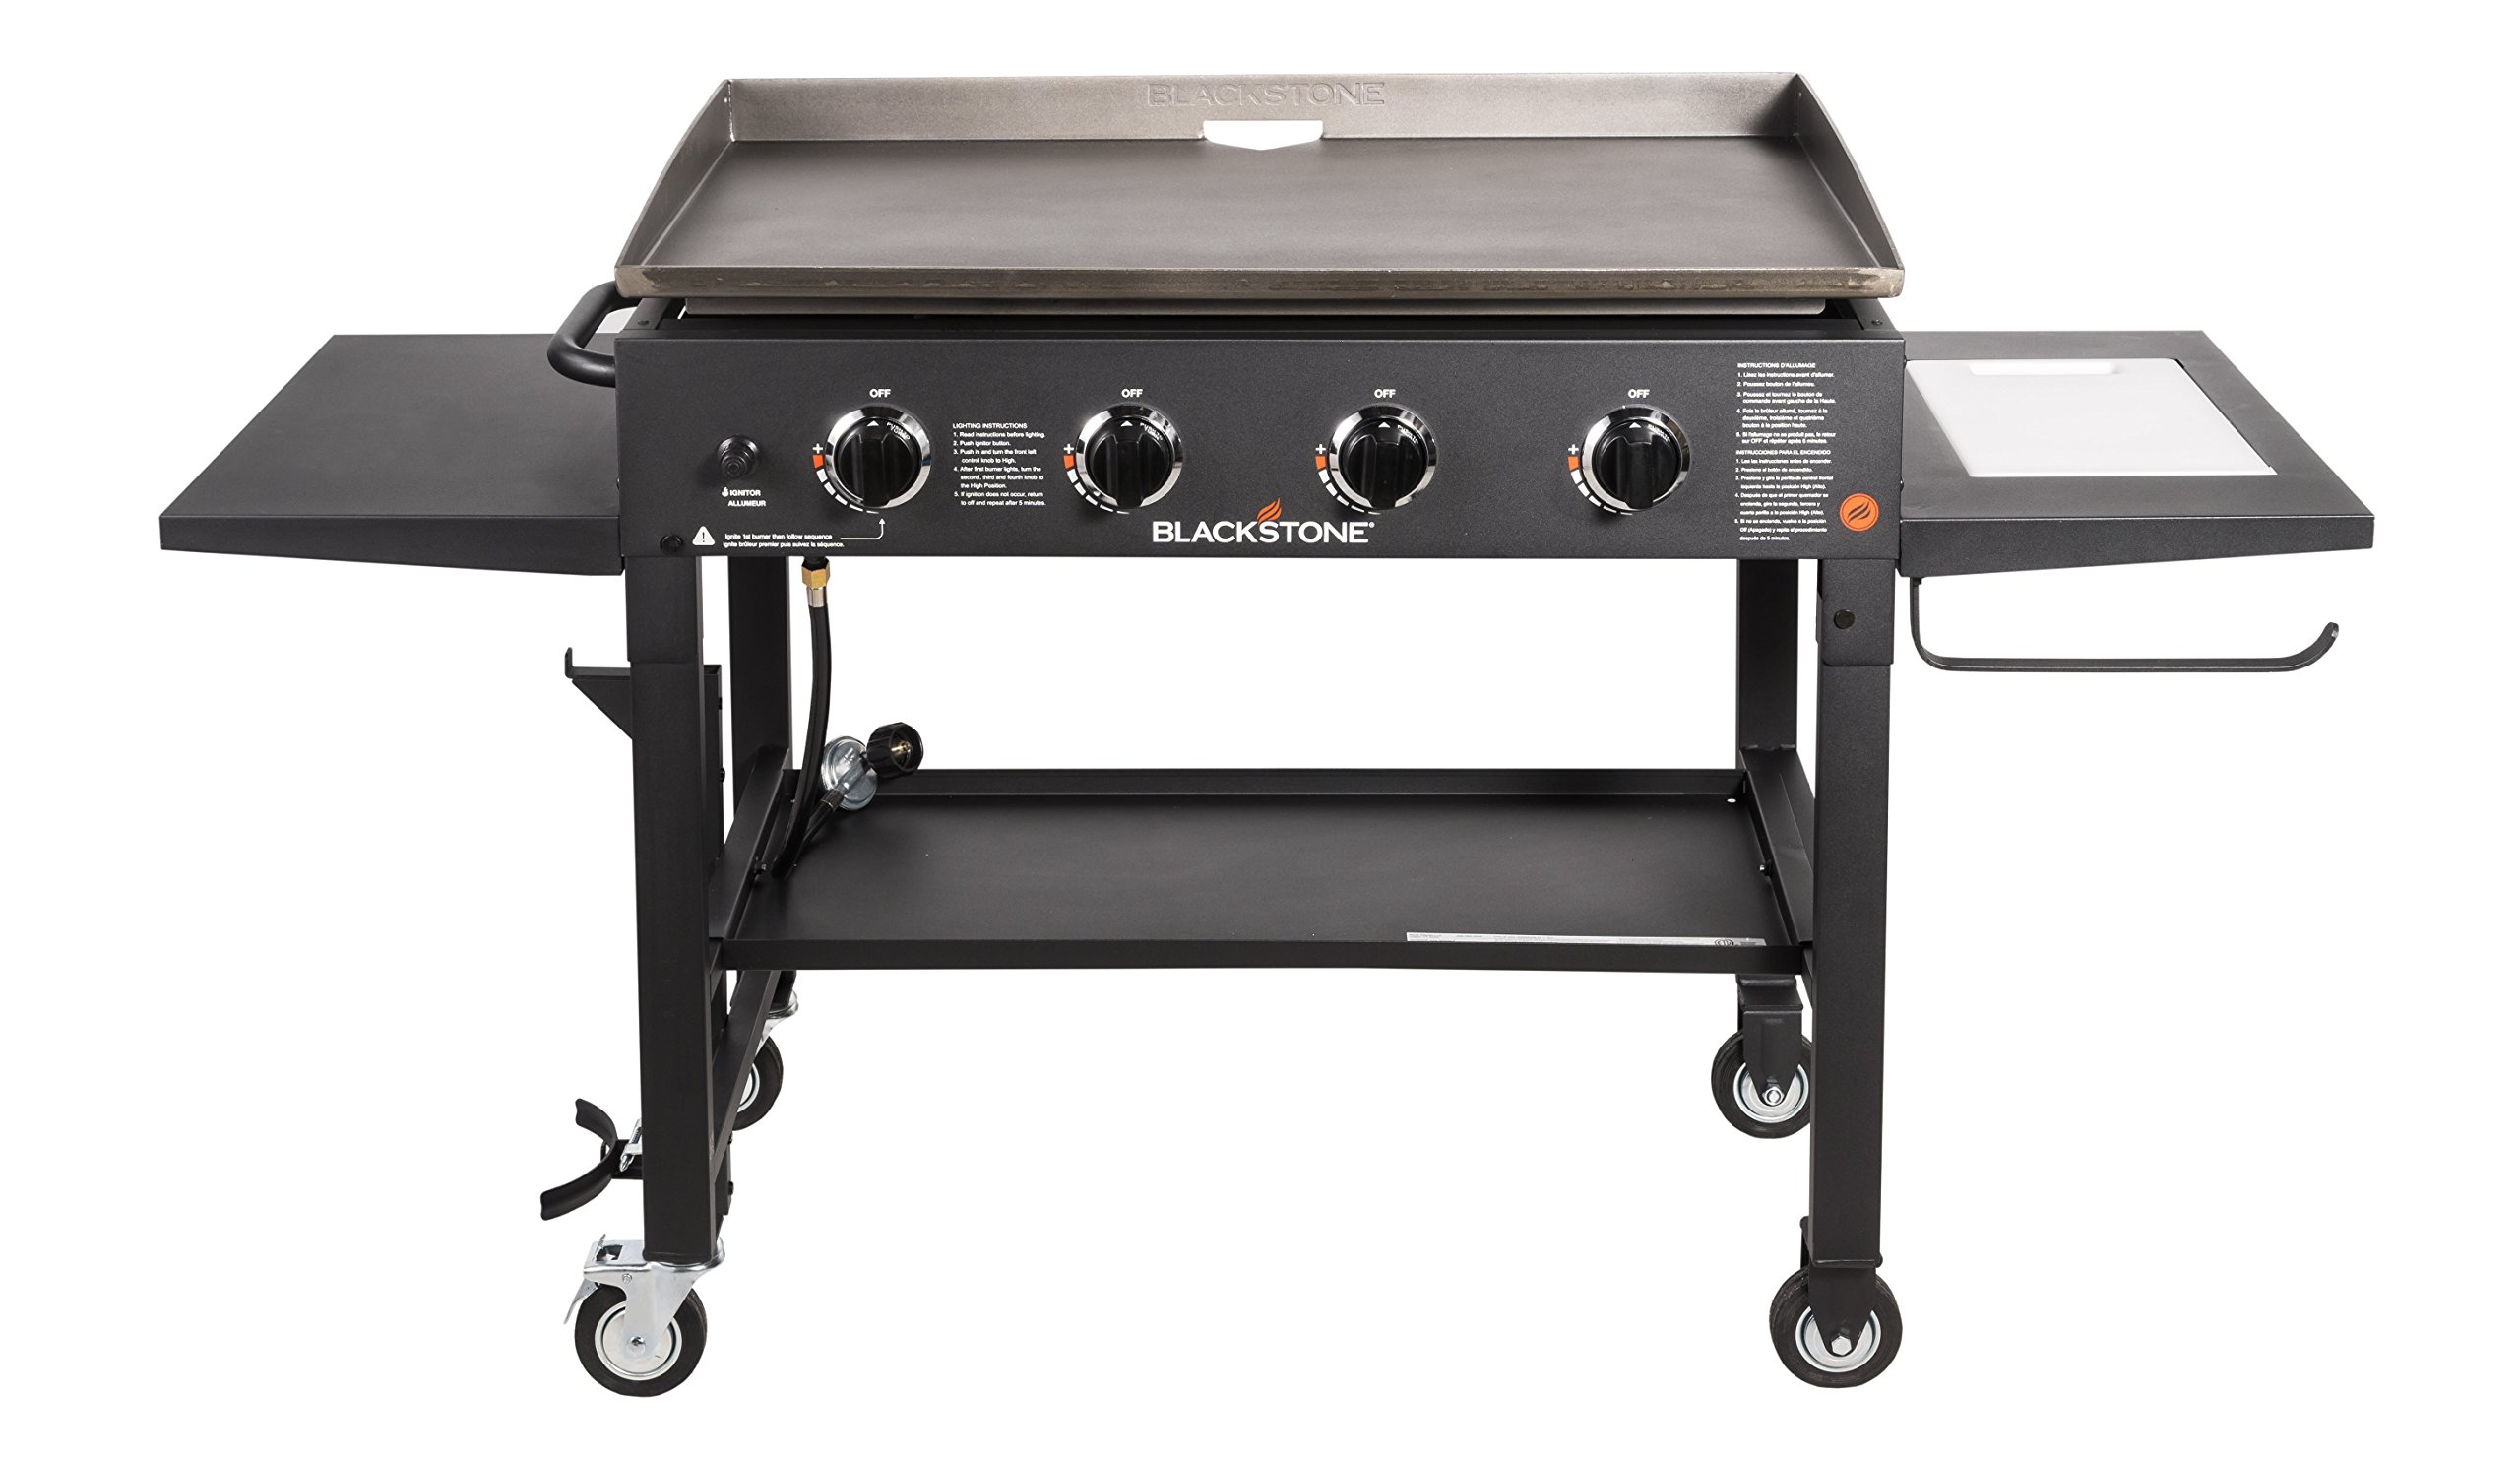 Blackstone 36 inch Outdoor Flat Top Gas Grill Griddle Station - 4-burner - Propane Fueled - Restaurant Grade - Professional Quality - With NEW Accessory Side Shelf and Rear Grease Management System by Blackstone